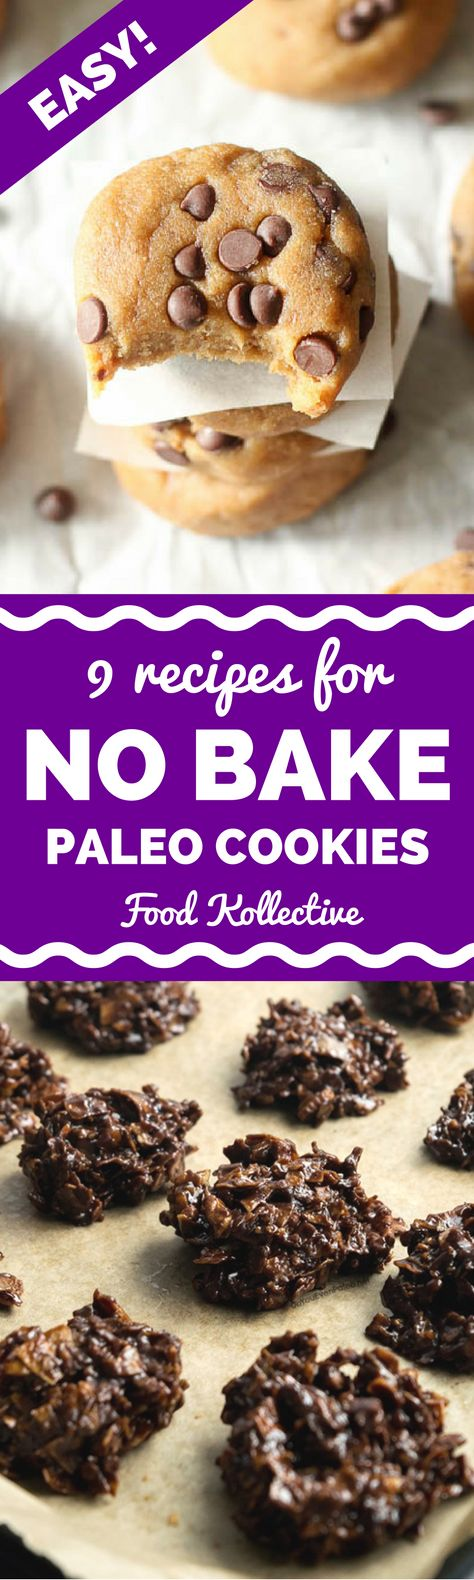 I was looking for no bake paleo cookies and these look incredible! There are recipes for Paleo chocolate chip cookies, Paleo samoa cookies, Paleo white chocolate macadamia nut cookies, and more. No baking required! I can't wait to make these for a Paleo dessert. Collected on FoodKollective.com